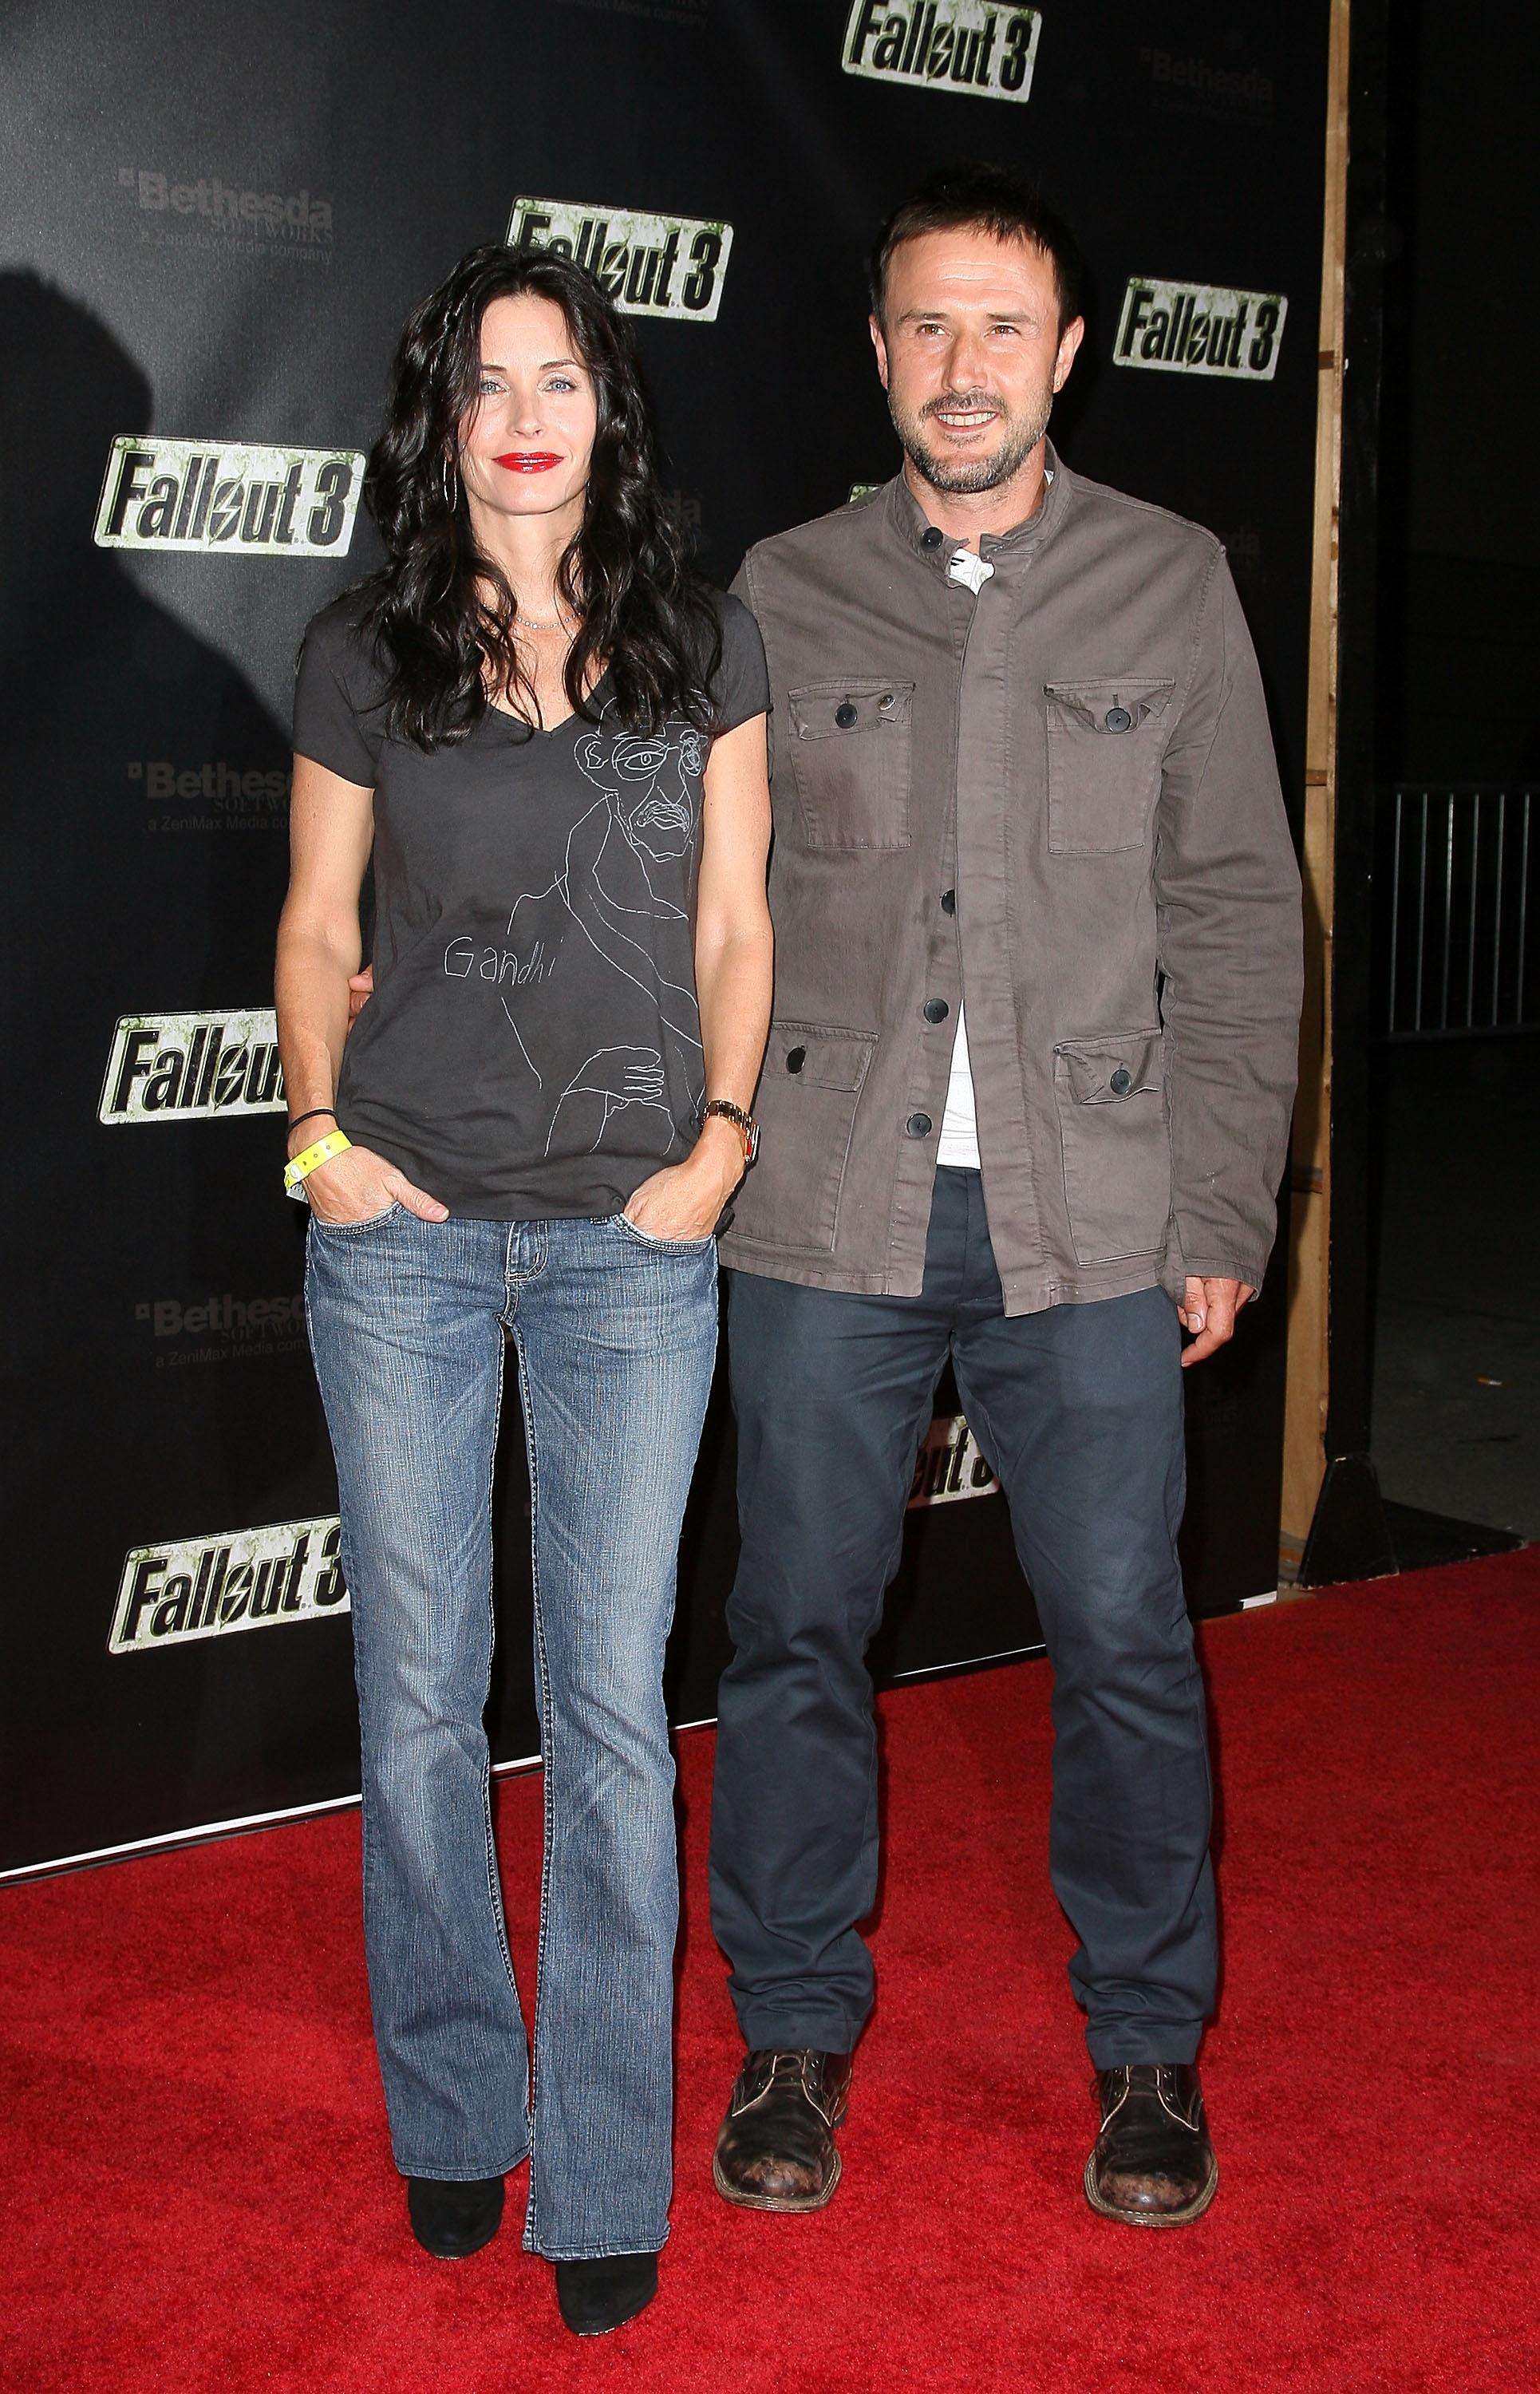 54948_Celebutopia-Courteney_Cox-Launch_Party_for_Fallout_3_videogame-01_122_234lo.jpg